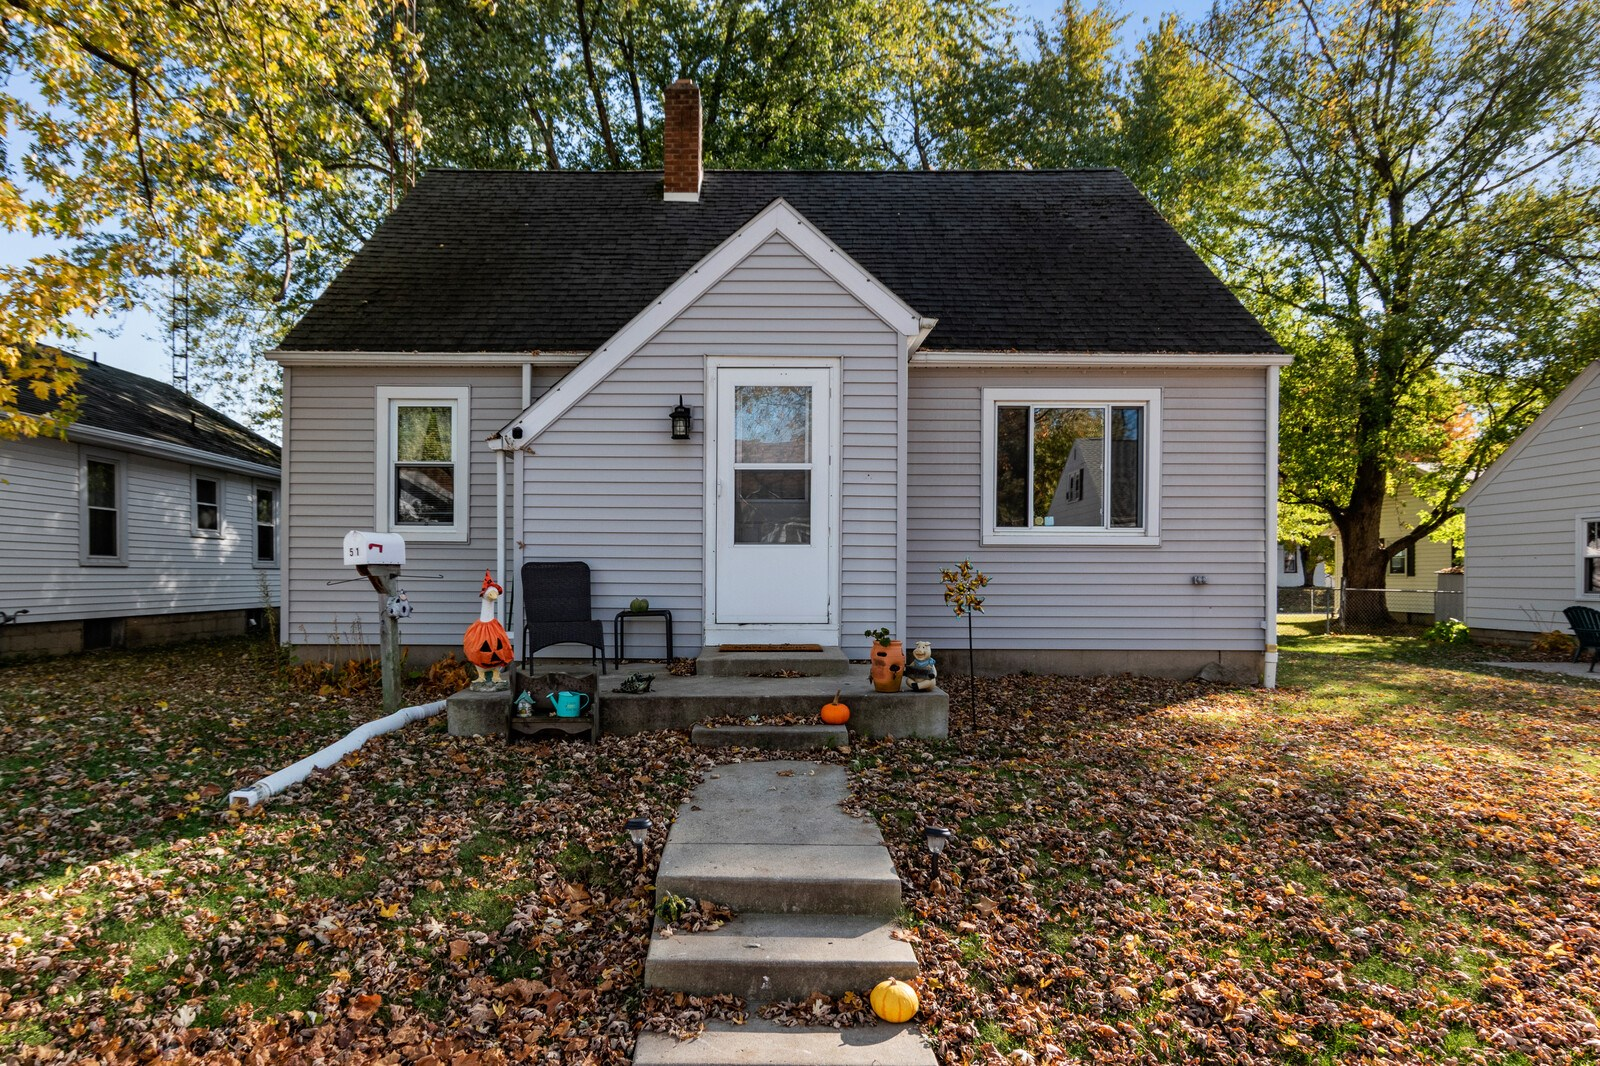 Home for Sale Hagerstown, Indiana